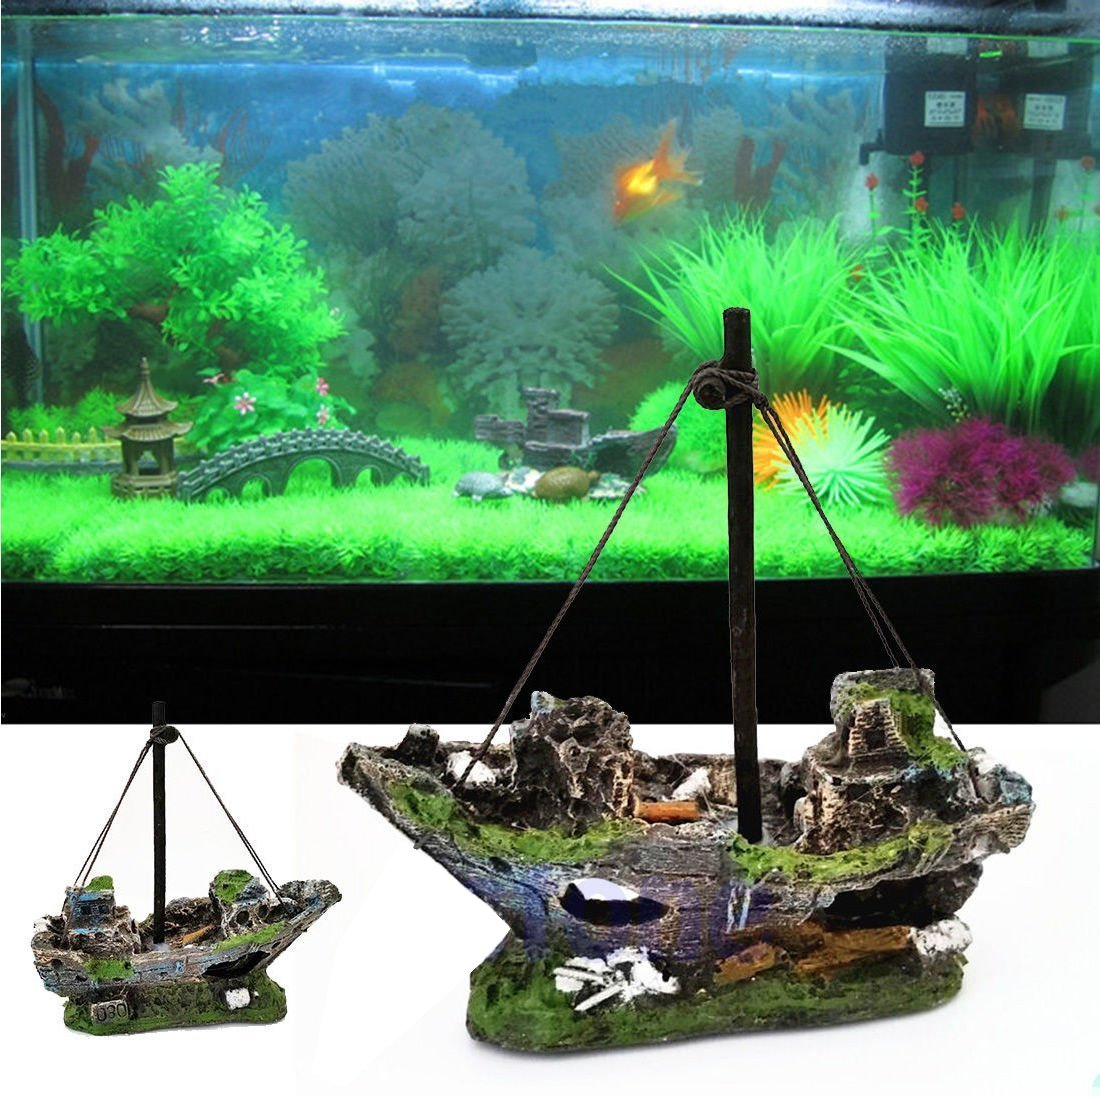 Amazon.com : UEETEK Fish Tank Accessories Ship Aquarium Ornament Decoration for Shrimp Cichild Turtle small fish : Pet Supplies